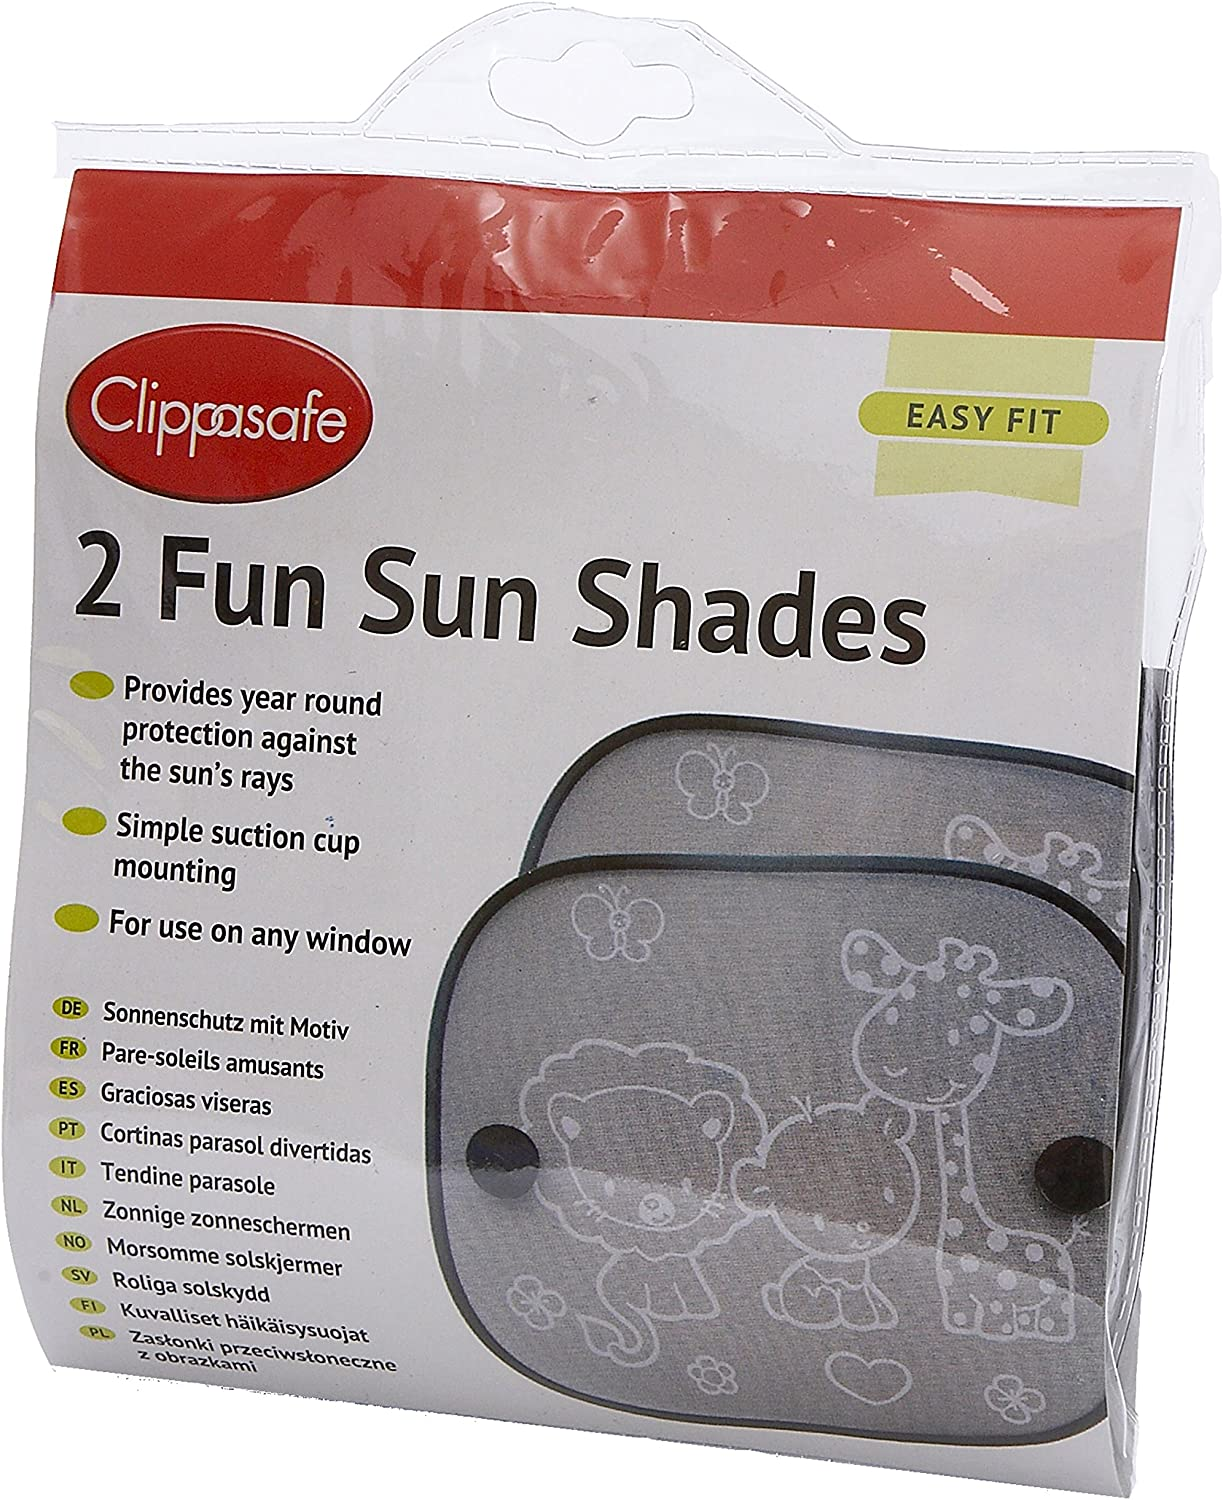 Clippasafe Fun Sun Screens Black and White, 2 - Pack